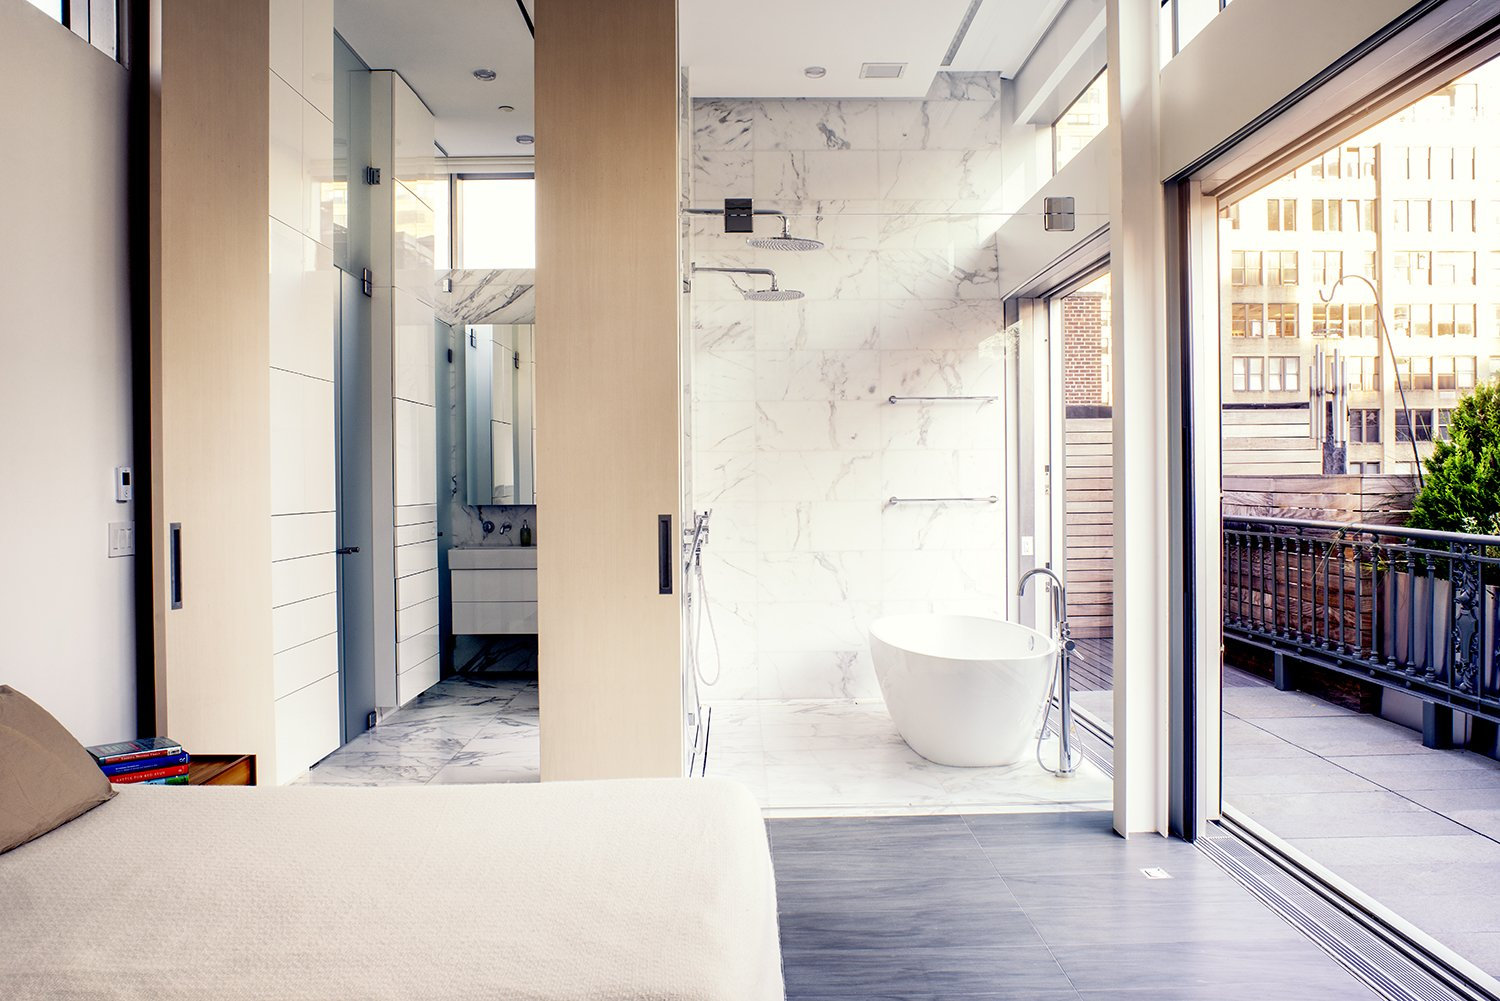 A marble wet room features a freestanding tub by Victoria and Albert and dual showers, while another shower on the terrace offers the option of washing outdoors. A 12-foot wooden door swings back to reveal a dressing room. Tagged: Bath Room, Freestanding Tub, and Marble Wall.  Photo 7 of 10 in A Rooftop Addition on a 19th-Century Building Suits a Growing Family's Needs